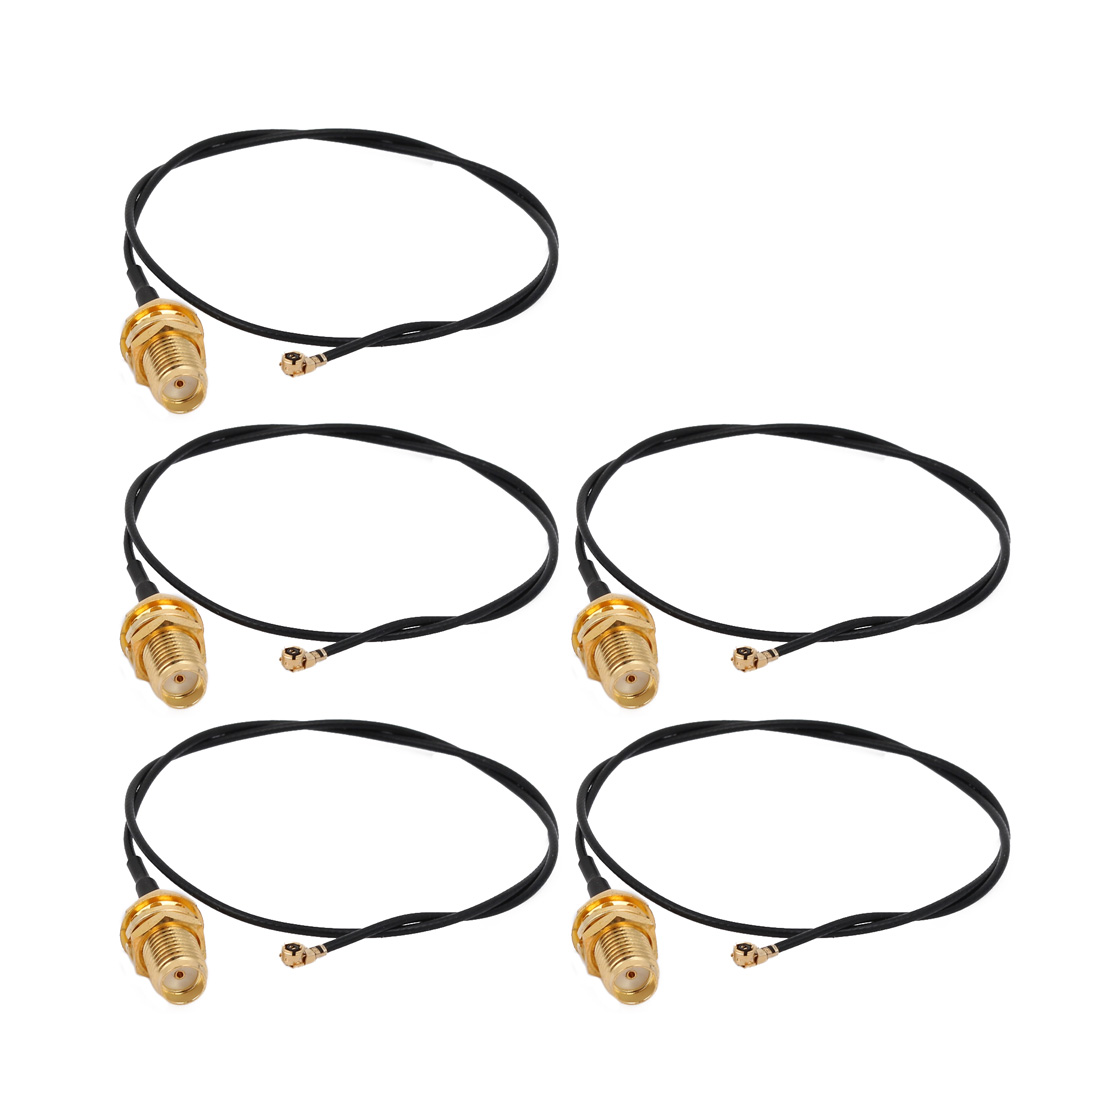 5pcs RF1.13 IPEX 1.0 to SMA Female Connector Antenna WiFi Pigtail Cable 30cm